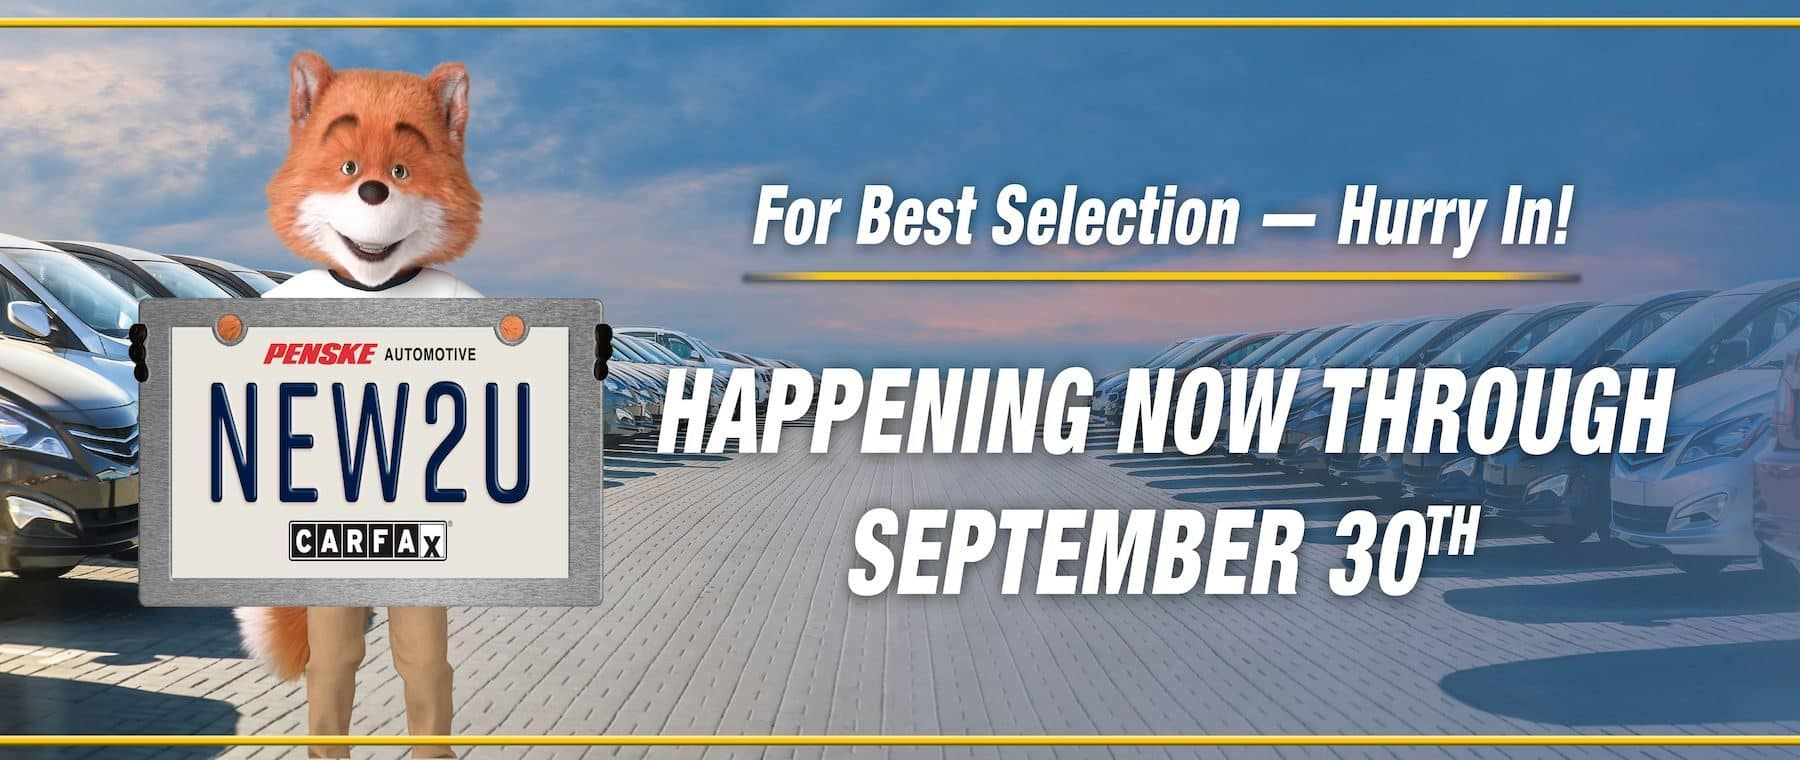 For Best Selection - Hurry In! Happening now through September 30th